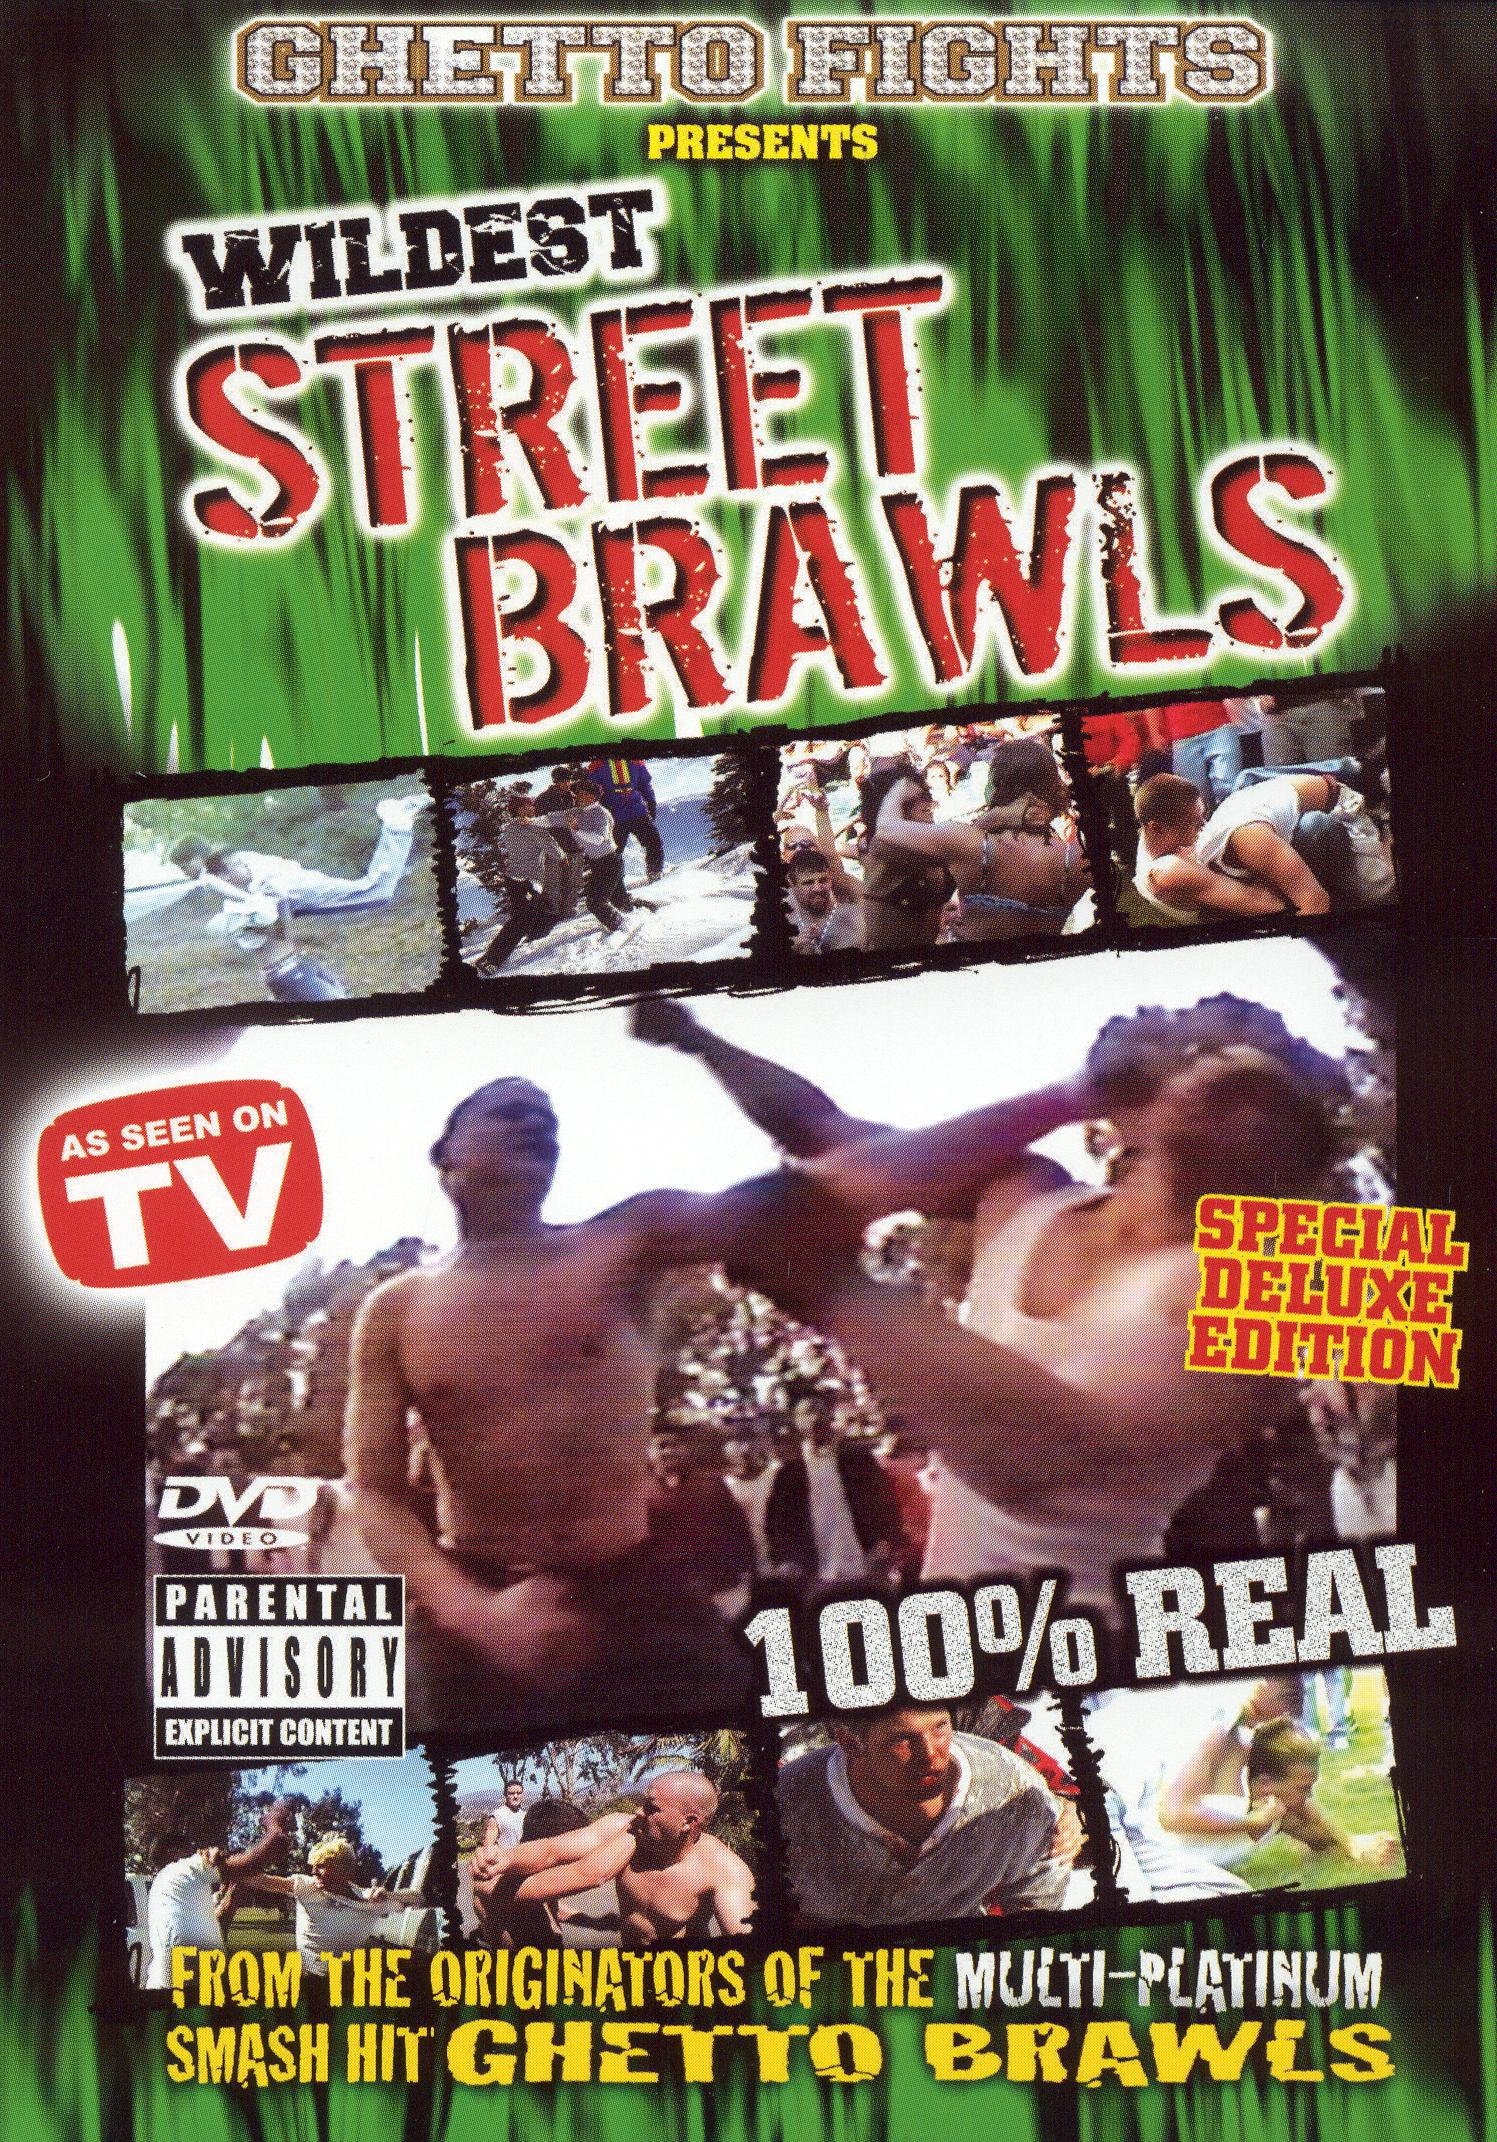 Ghetto Fights Presents: Wildest Street Brawls, Vol. 1